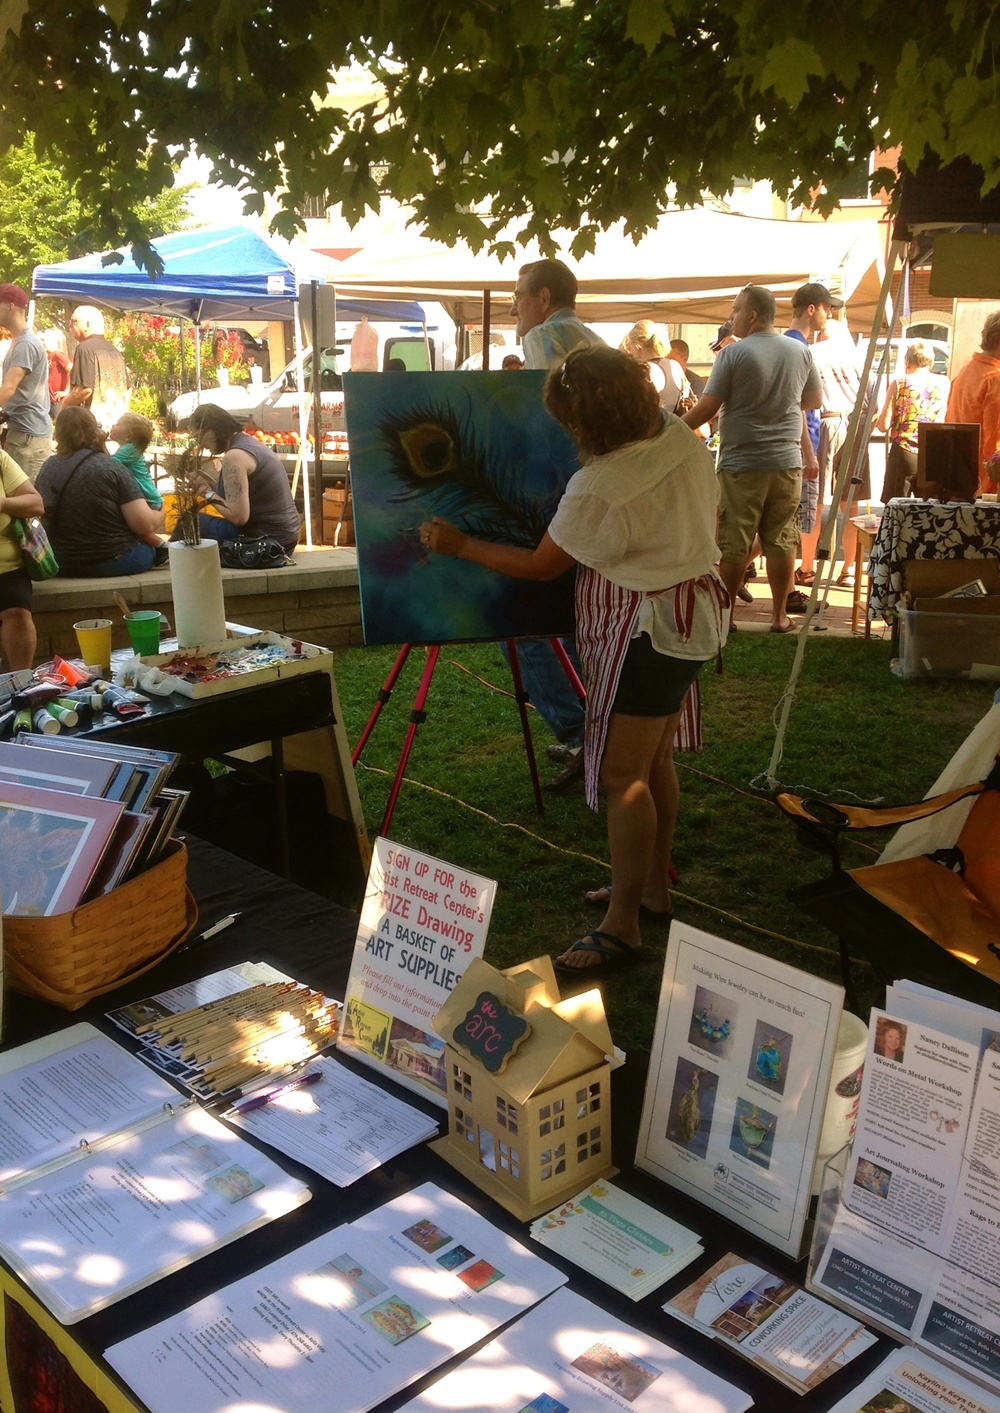 Painting live at Saturday's Bentonville Square Farmer's Market